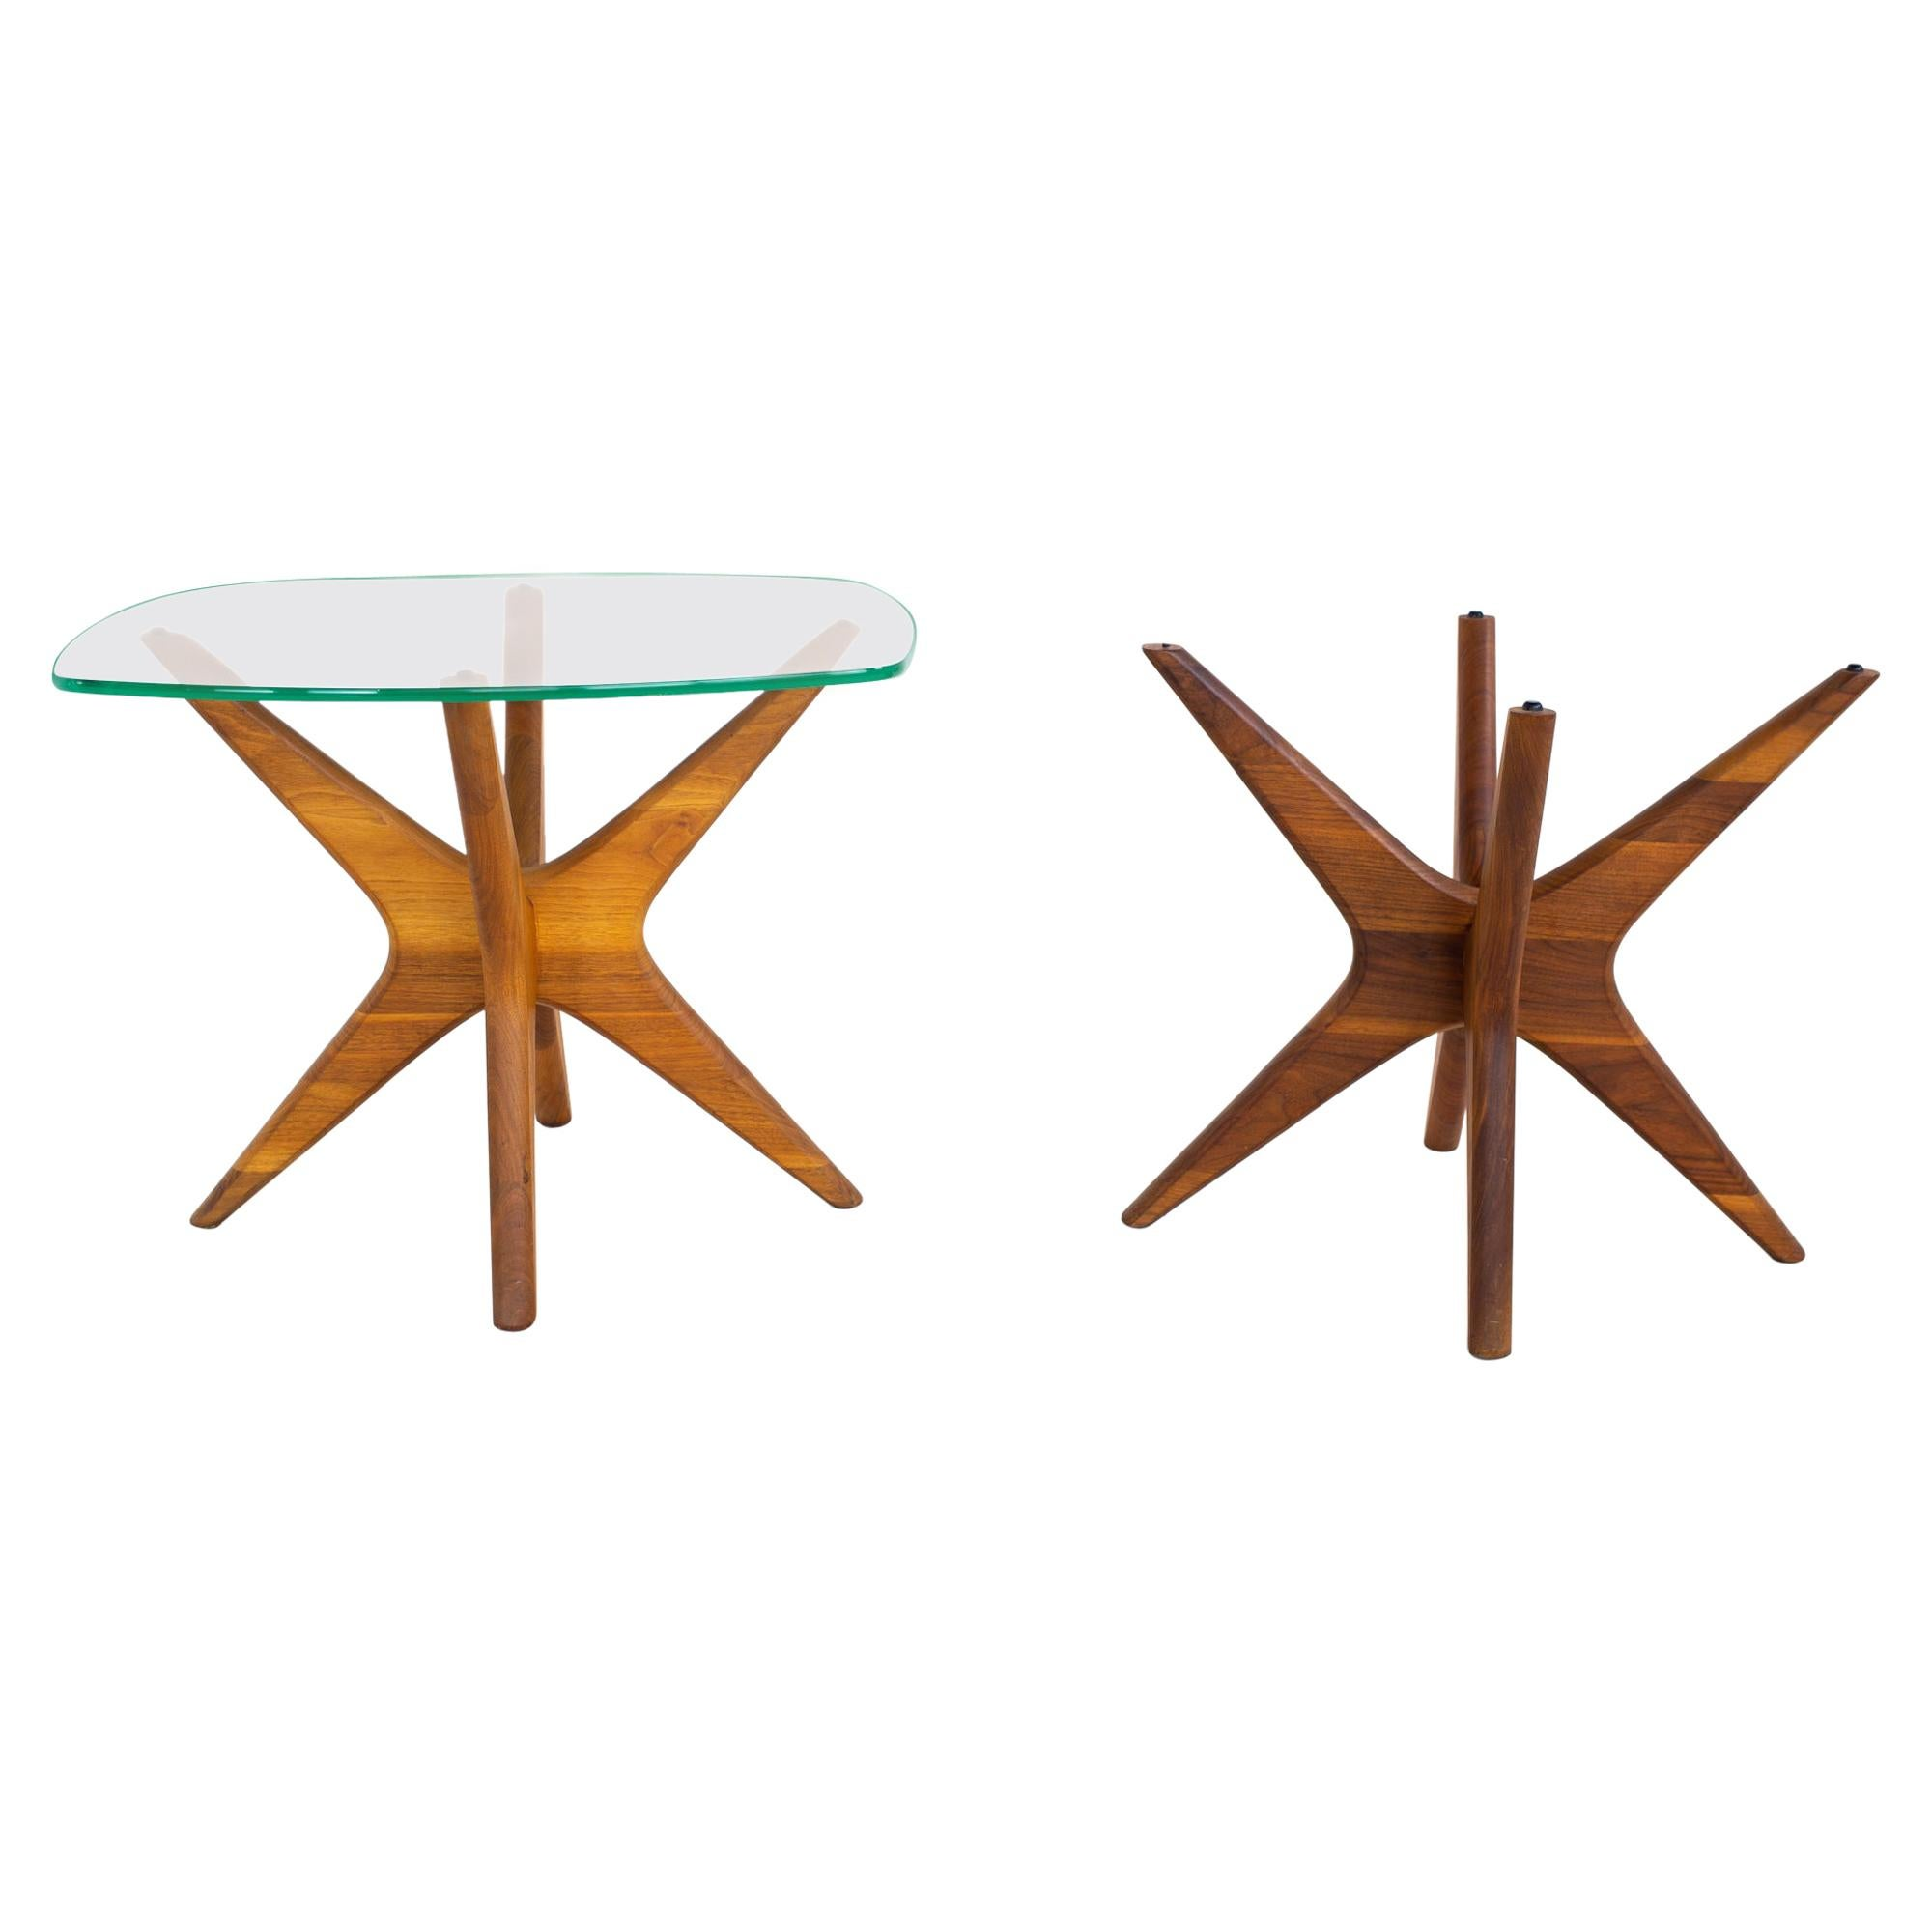 Adrian Pearsall for Craft Associates Mid Century Jacks Side End Table, Pair